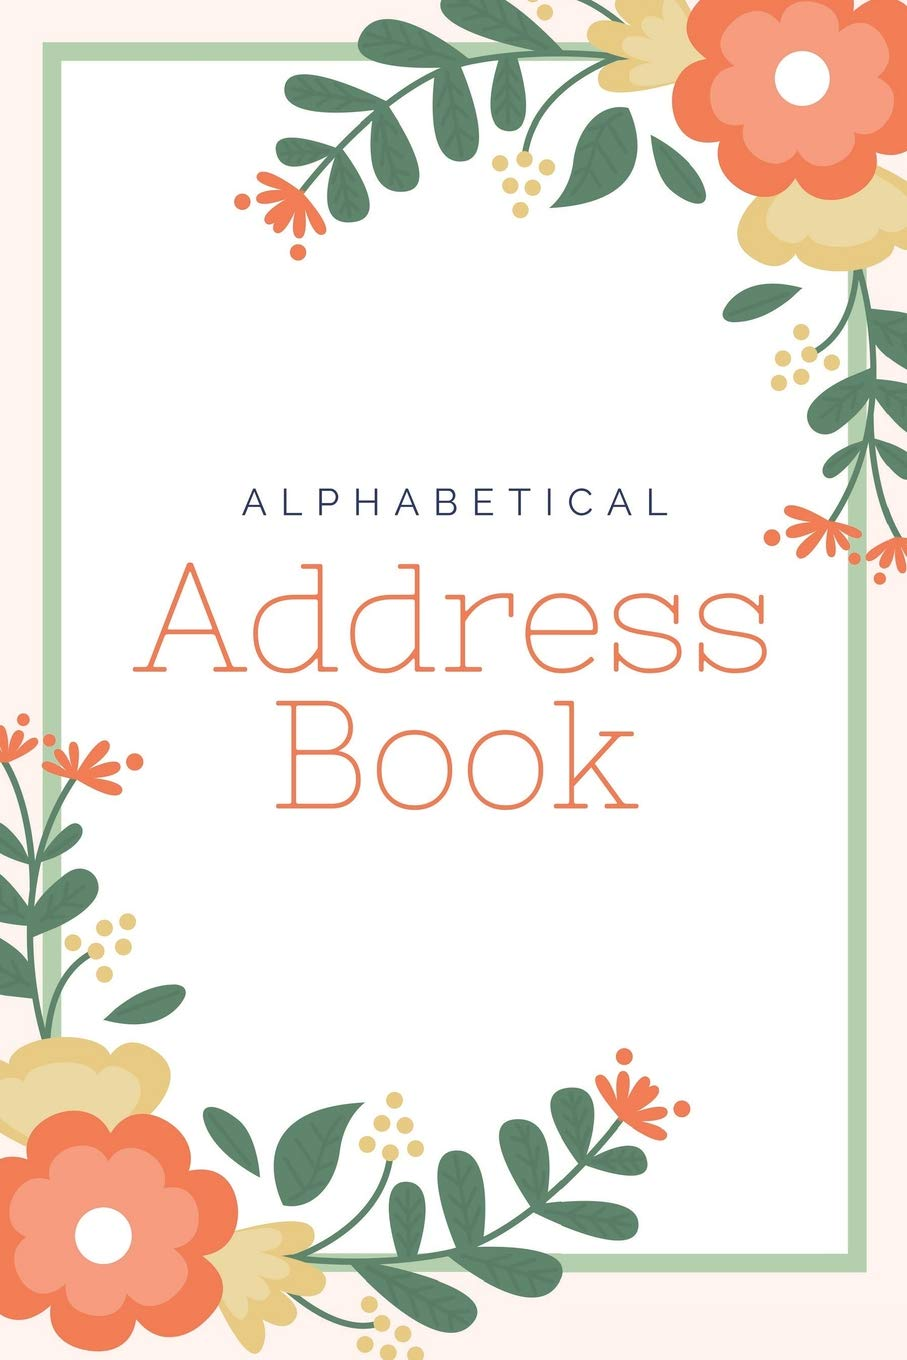 Email And Telephone Contacts Book Alphabetical Address Address Book